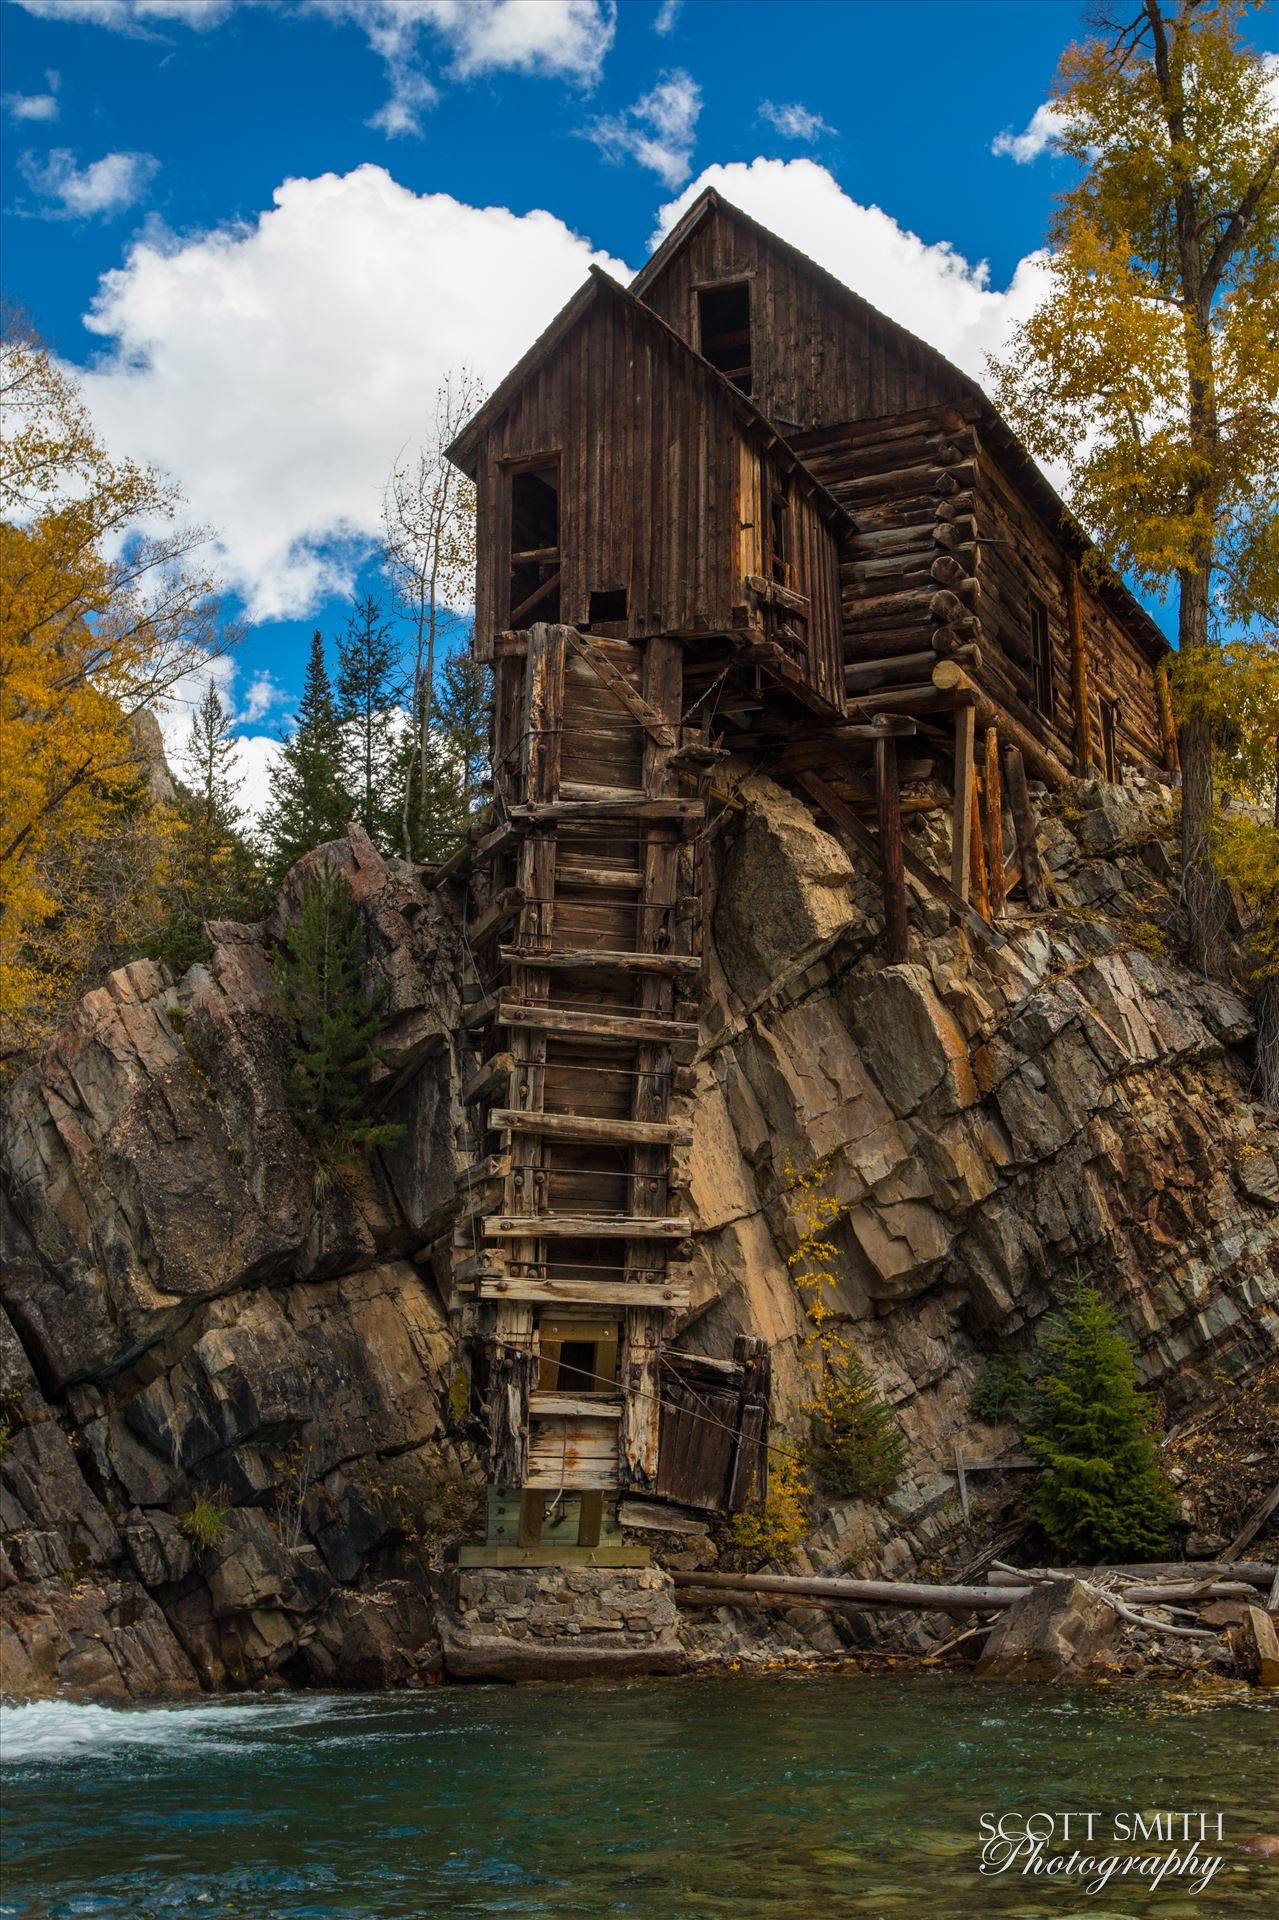 Crystal Mill, Colorado 13 - The Crystal Mill, or the Old Mill is an 1892 wooden powerhouse located on an outcrop above the Crystal River in Crystal, Colorado by Scott Smith Photos